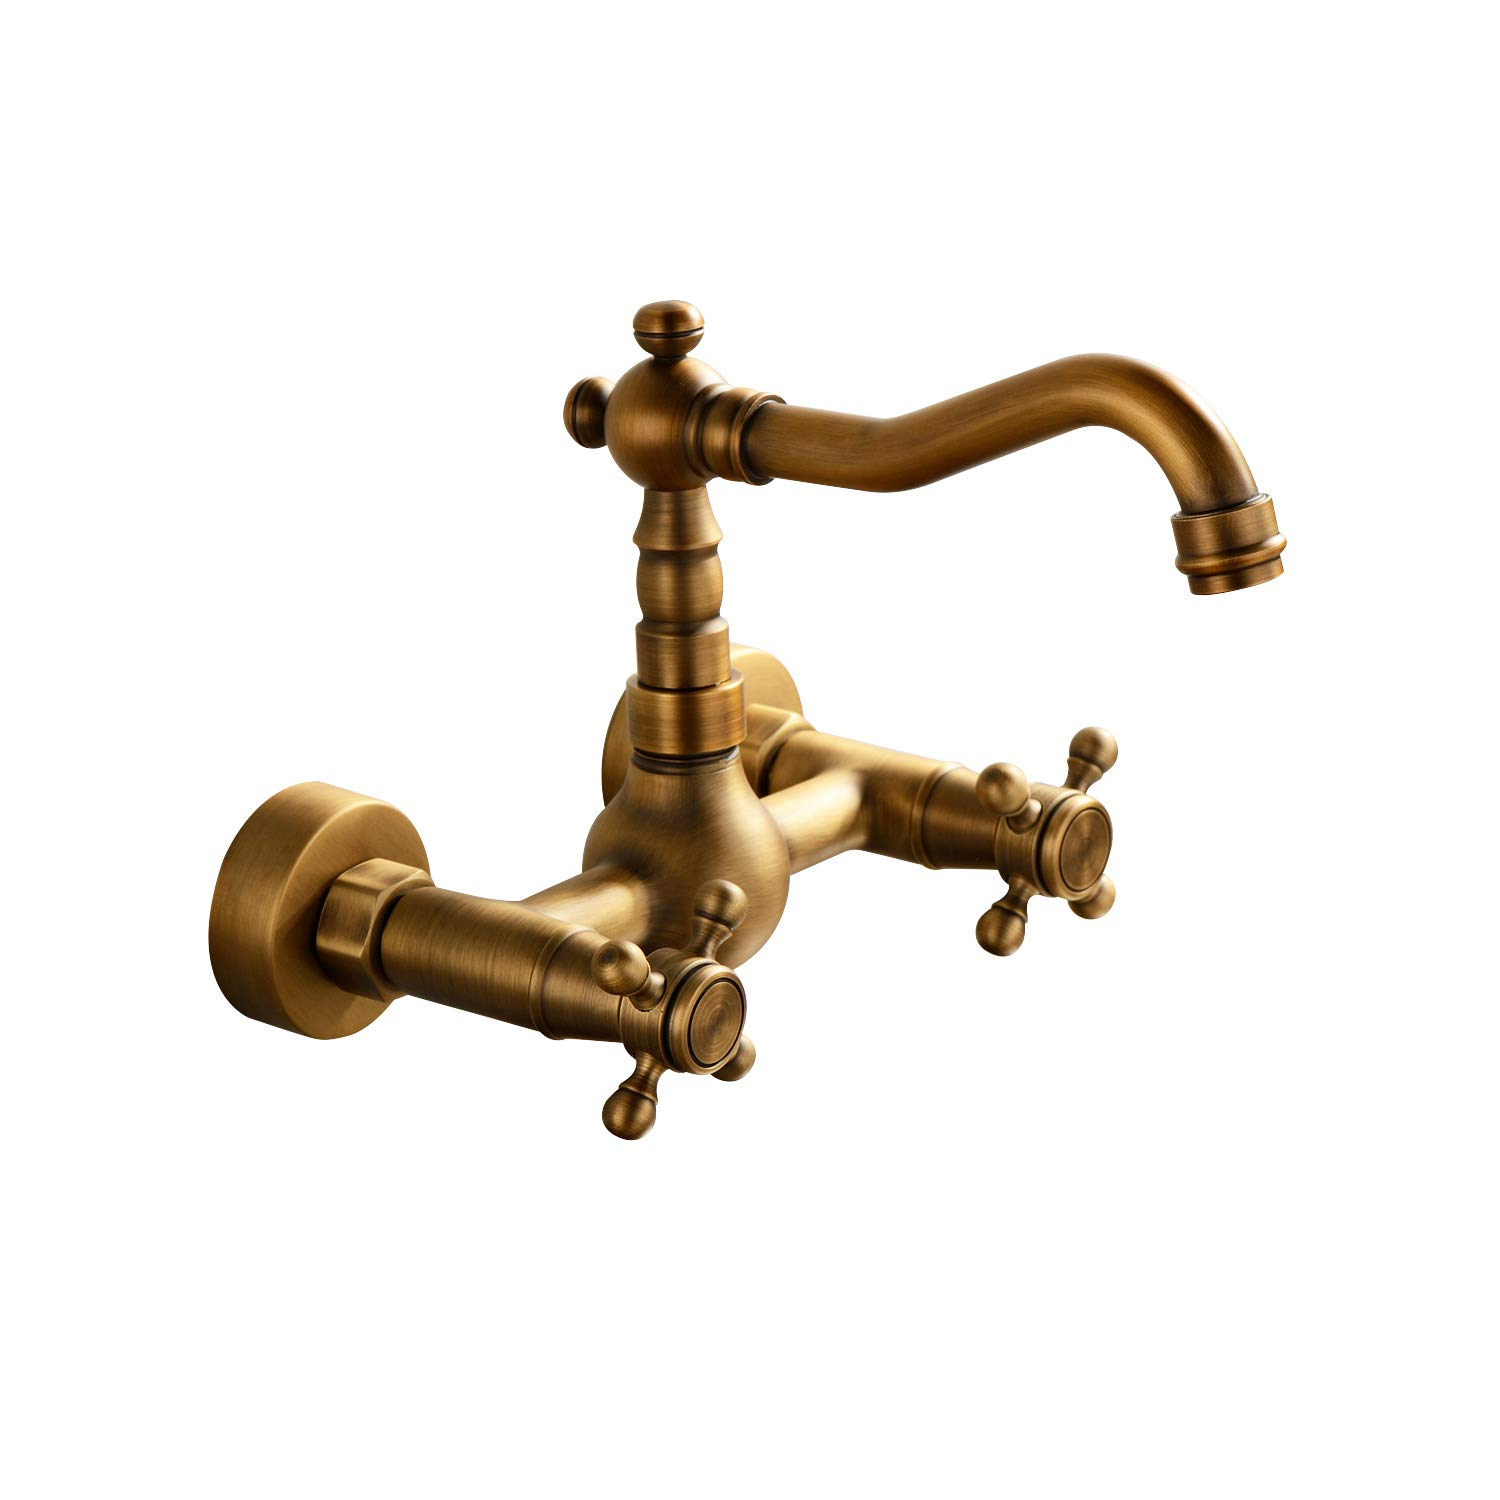 Sprinkle Kitchen Bathroom Faucet Wall Mount Solid Brass Mixer Taps Vintage Curve Tall Spout Antique Brass Finish